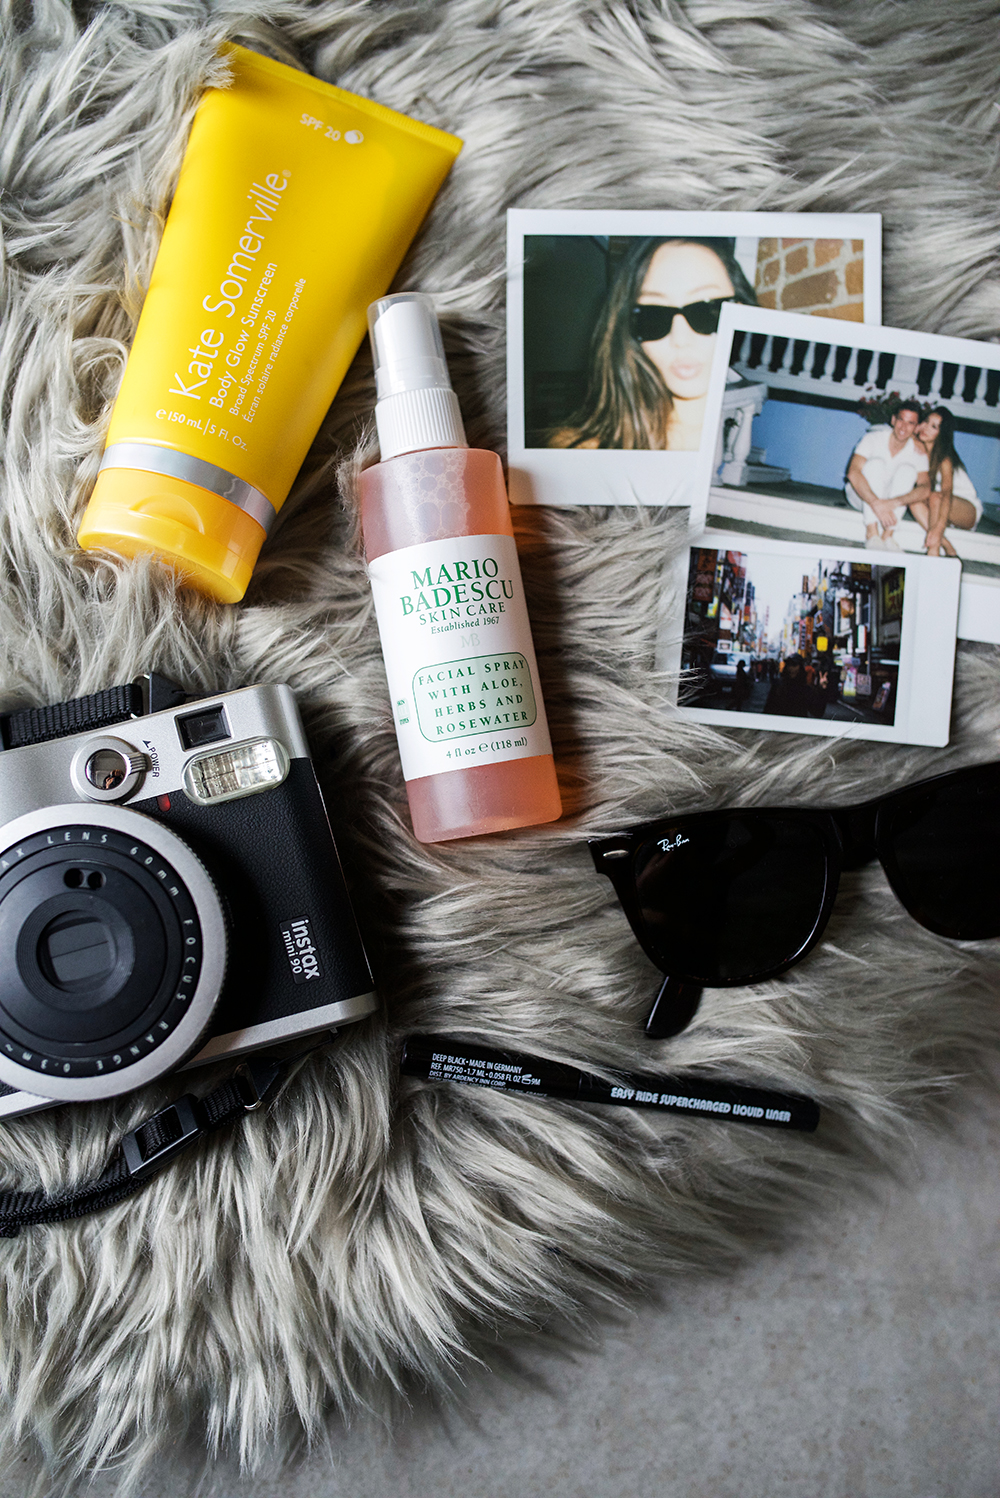 Neon Blush, Outside Lands Music Festival, San Francisco music festival, PayPal, makeup, Ray-Ban wayfarer sunglasses, Kate Somerville sunscreen SPF lotion, Mario Badescu rosewater spray face mist, Fujifilm Instax Mini 90 camera, polaroid camera, liquid eyeliner Urban Outfitters